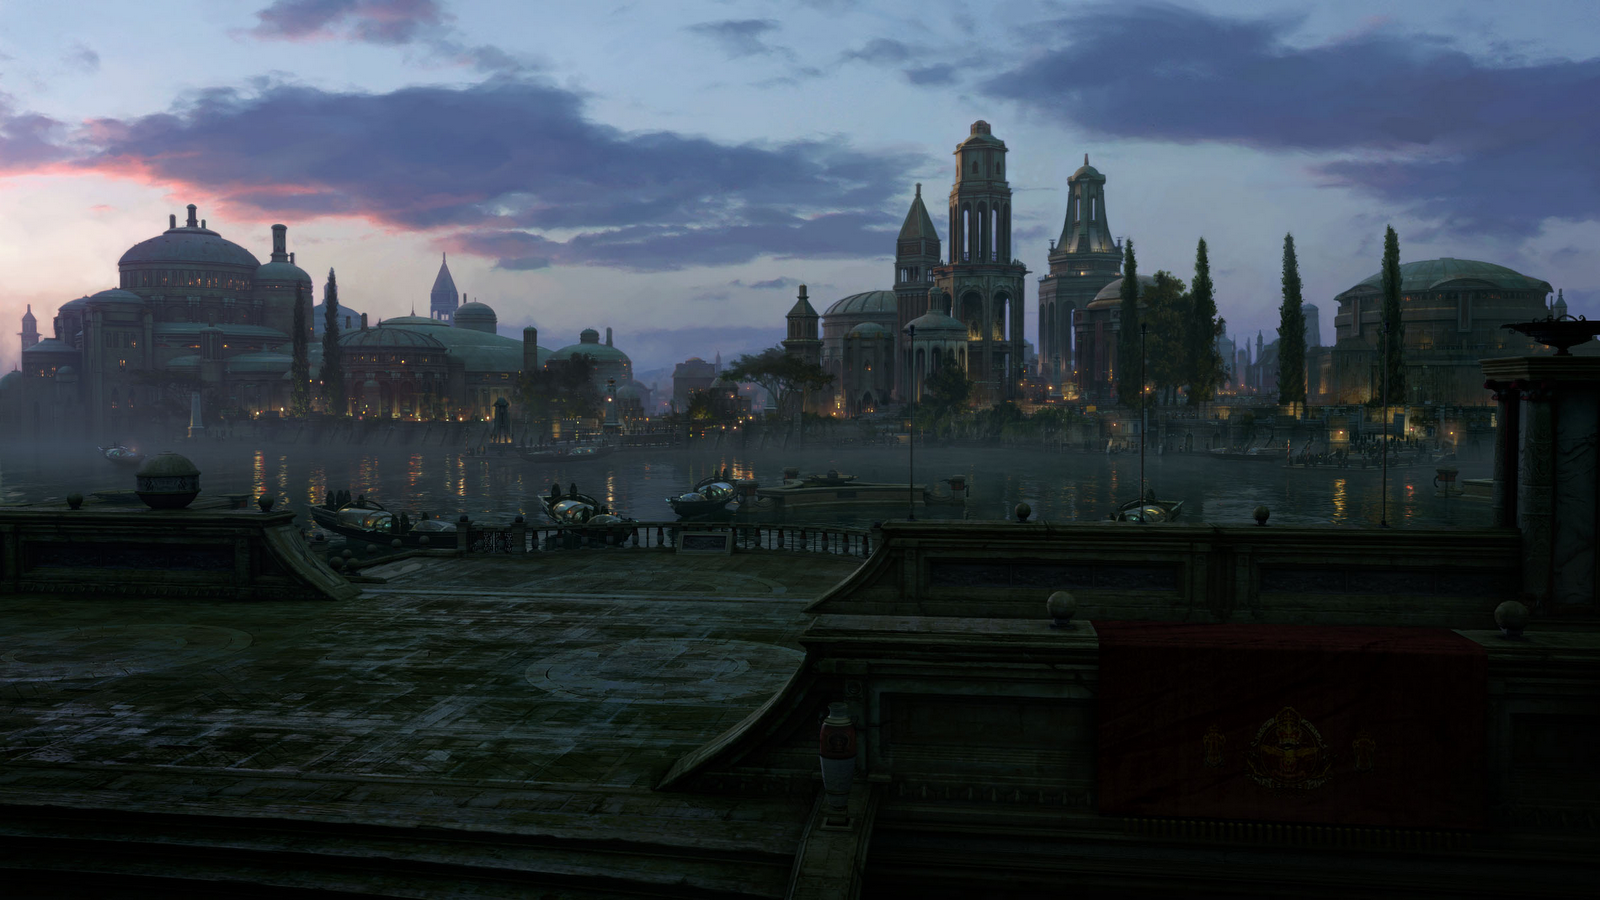 The City of Naboo Star Wars wallpaper 1600x900